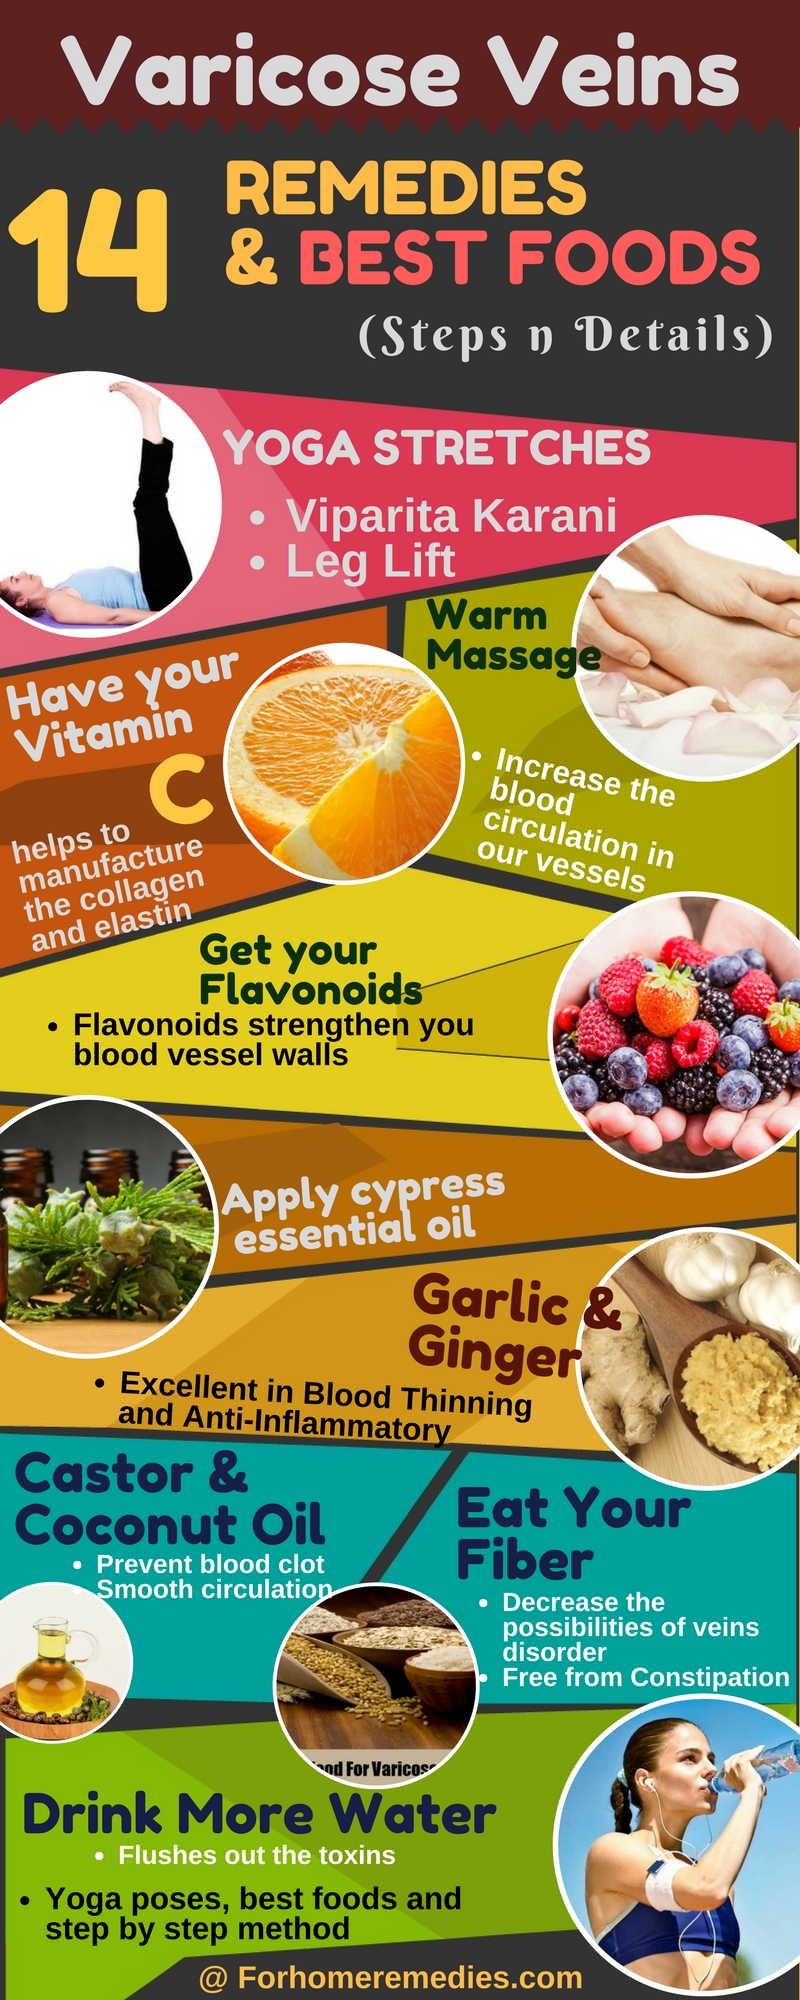 Home remedies for varicose veins and best foods, yoga poses, exercise, essential oils and massage for pain relief